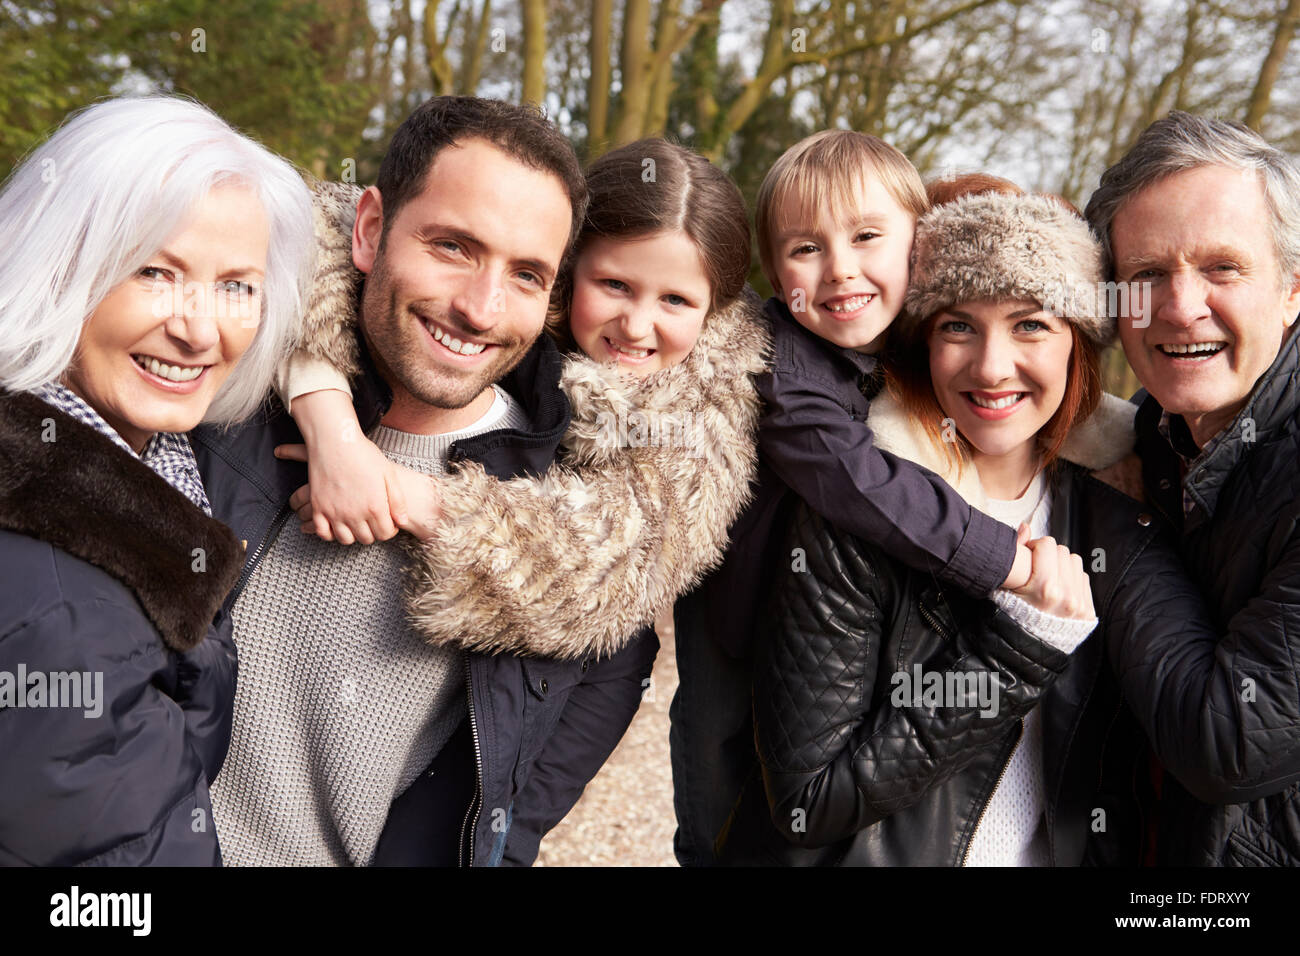 enjoyment,relaxation,togetherness,extended family - Stock Image